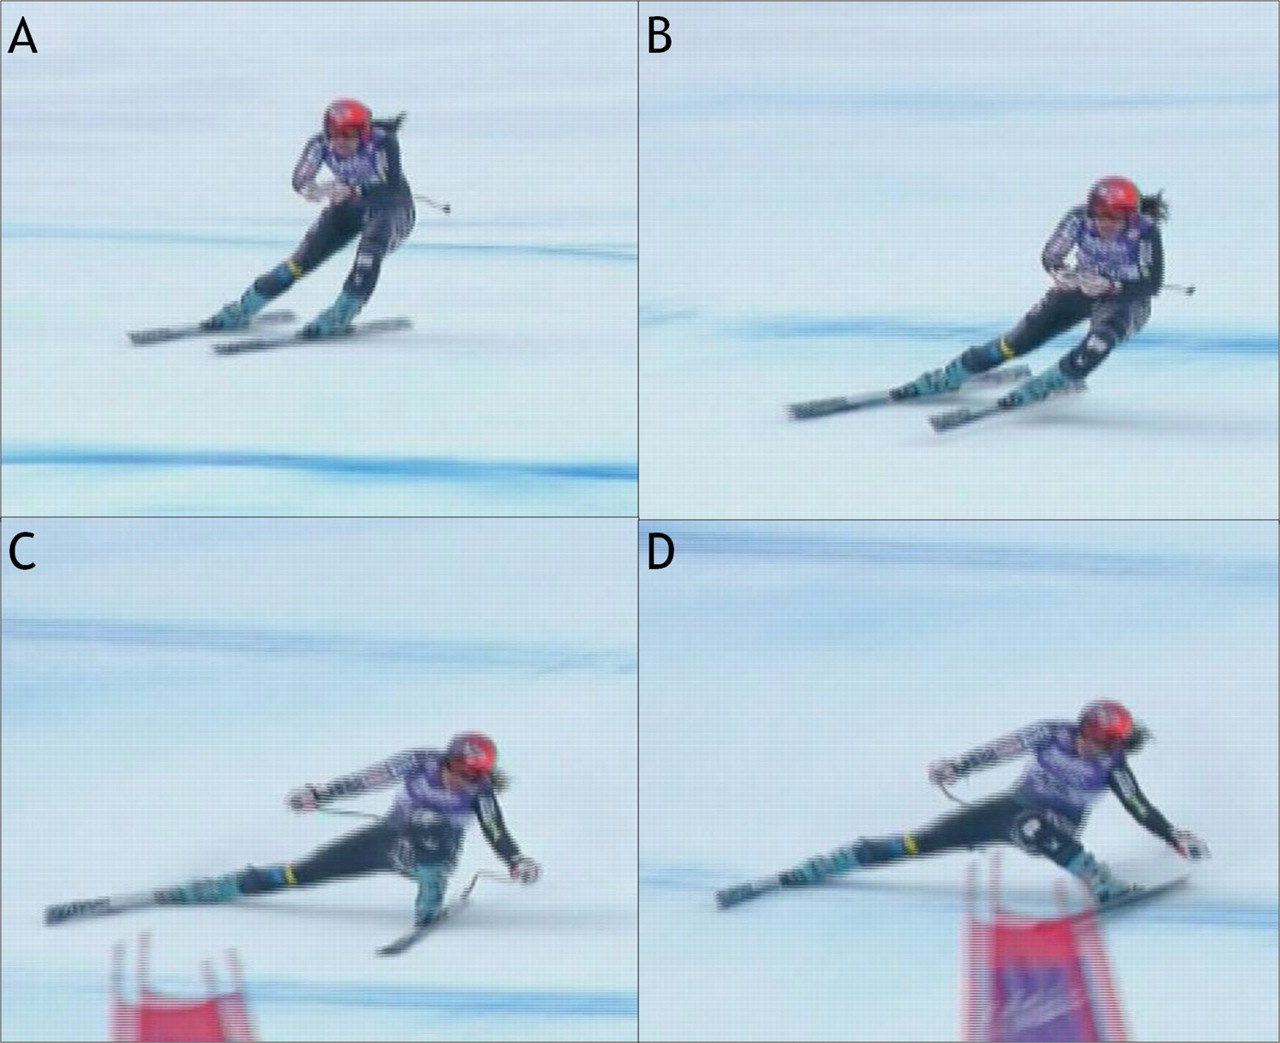 ACL Injuries and Downhill Skiing